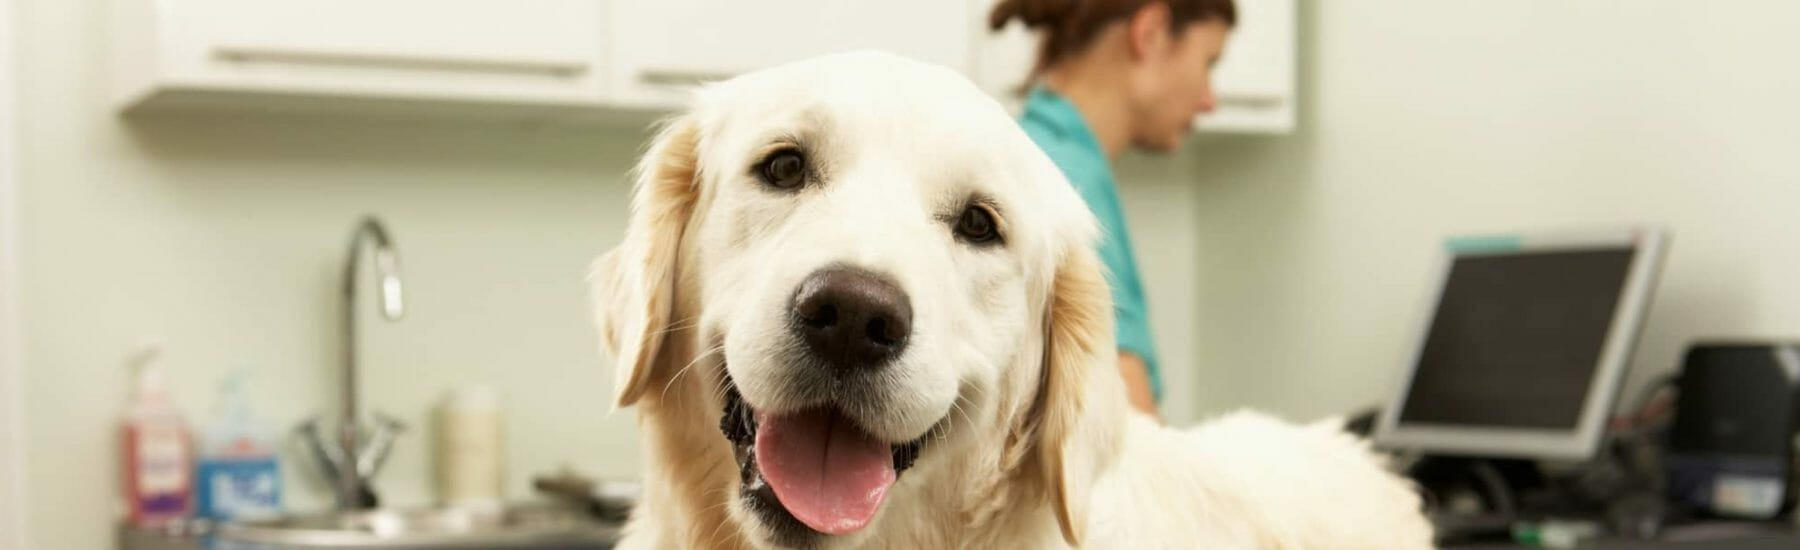 White dog looking towards camera with veterinarian in the back ground